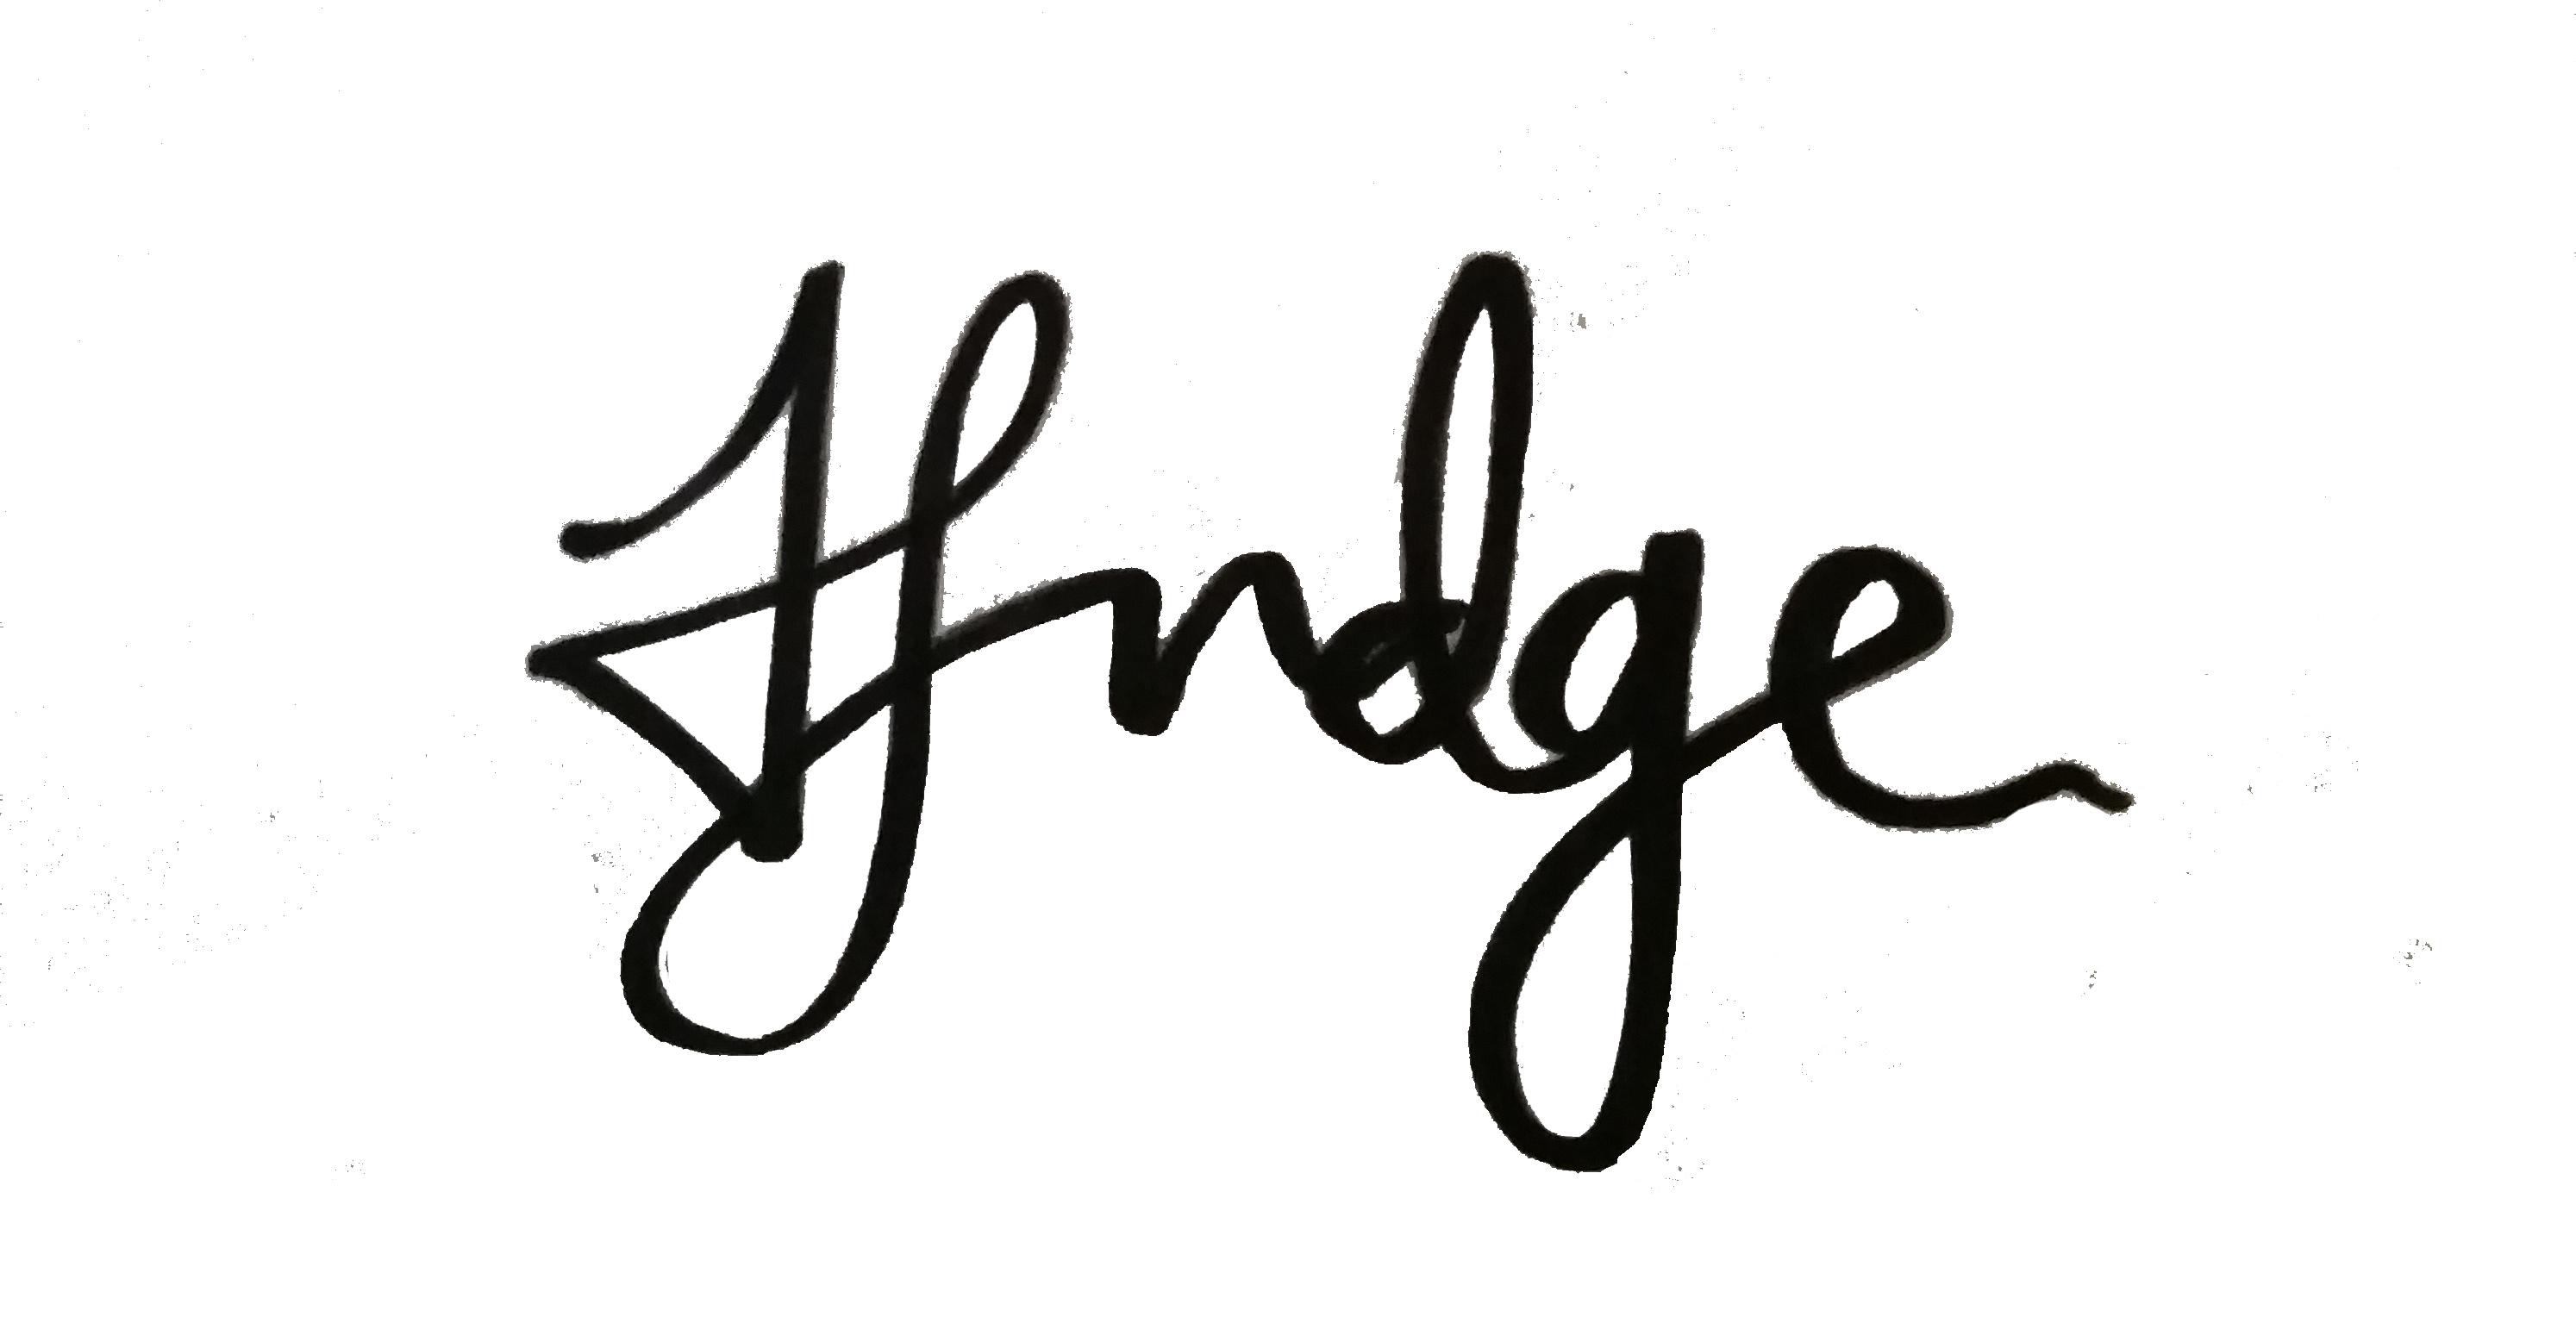 Helen Judge's Signature